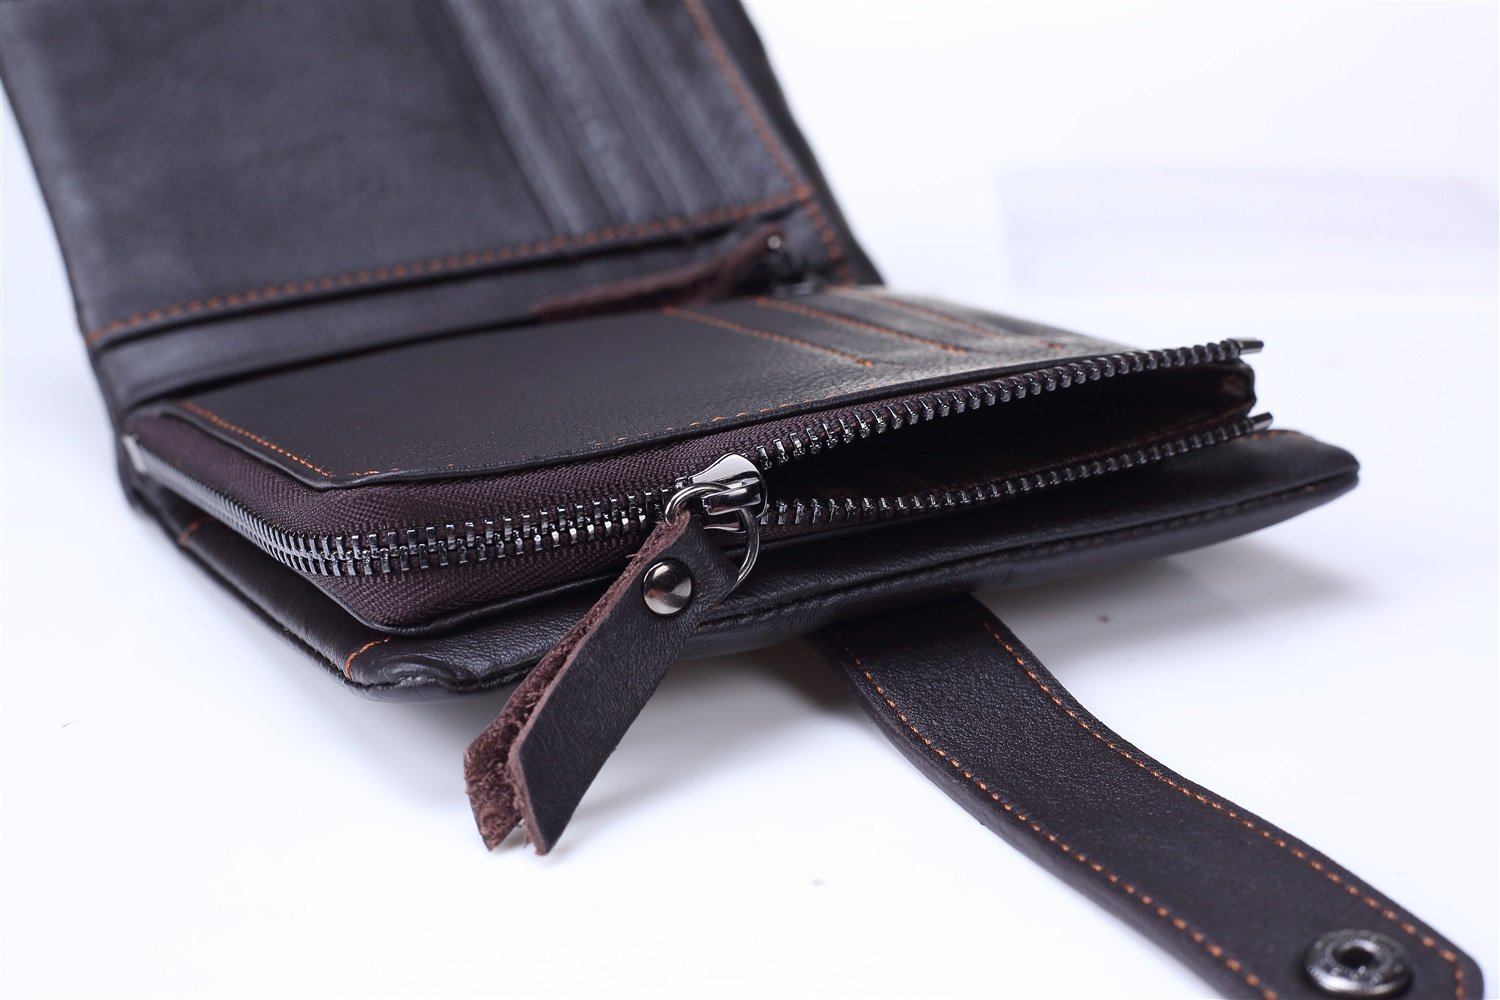 VAXT Direct Mens Wallet Poor The First Layer of Leather Handbag Zipper Change Holder Upright Three-fold Wallet Color : Brown, Size : S